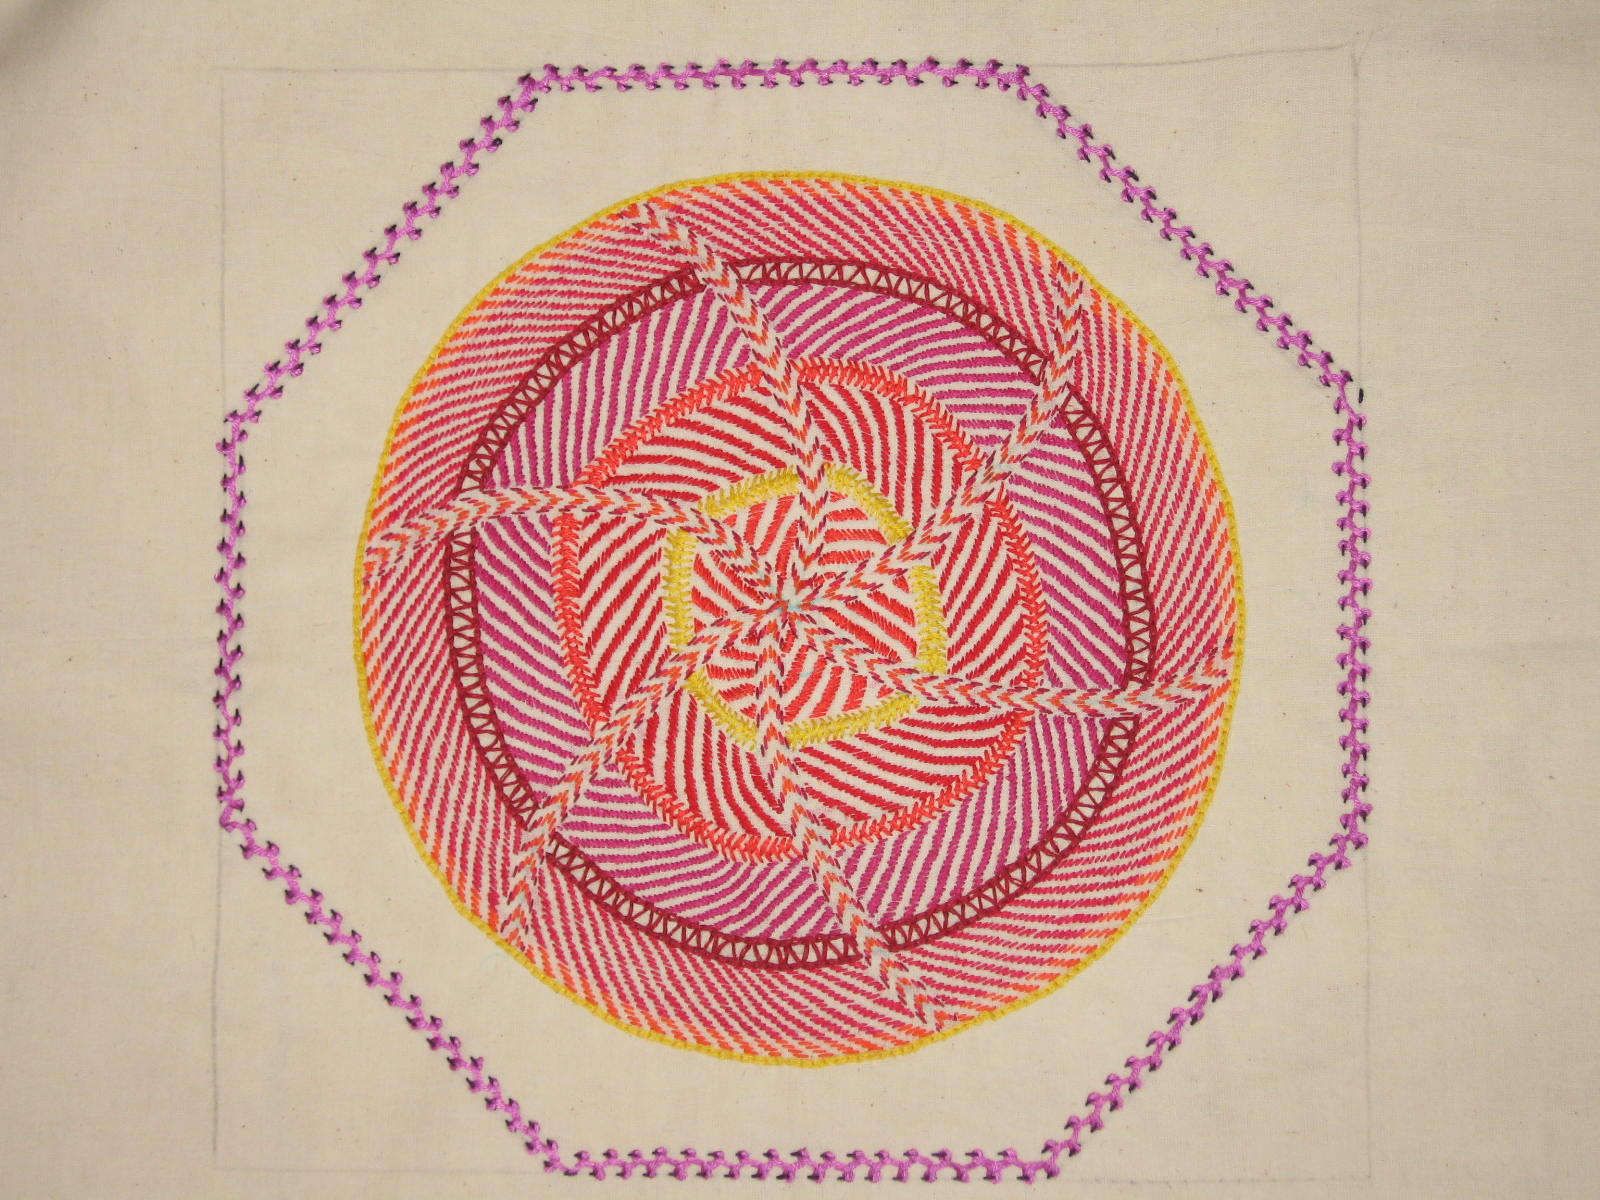 A white material background with purple, red, burgundy, organe and yellow embroidery stitches forming a series of concentric circles in the centre.